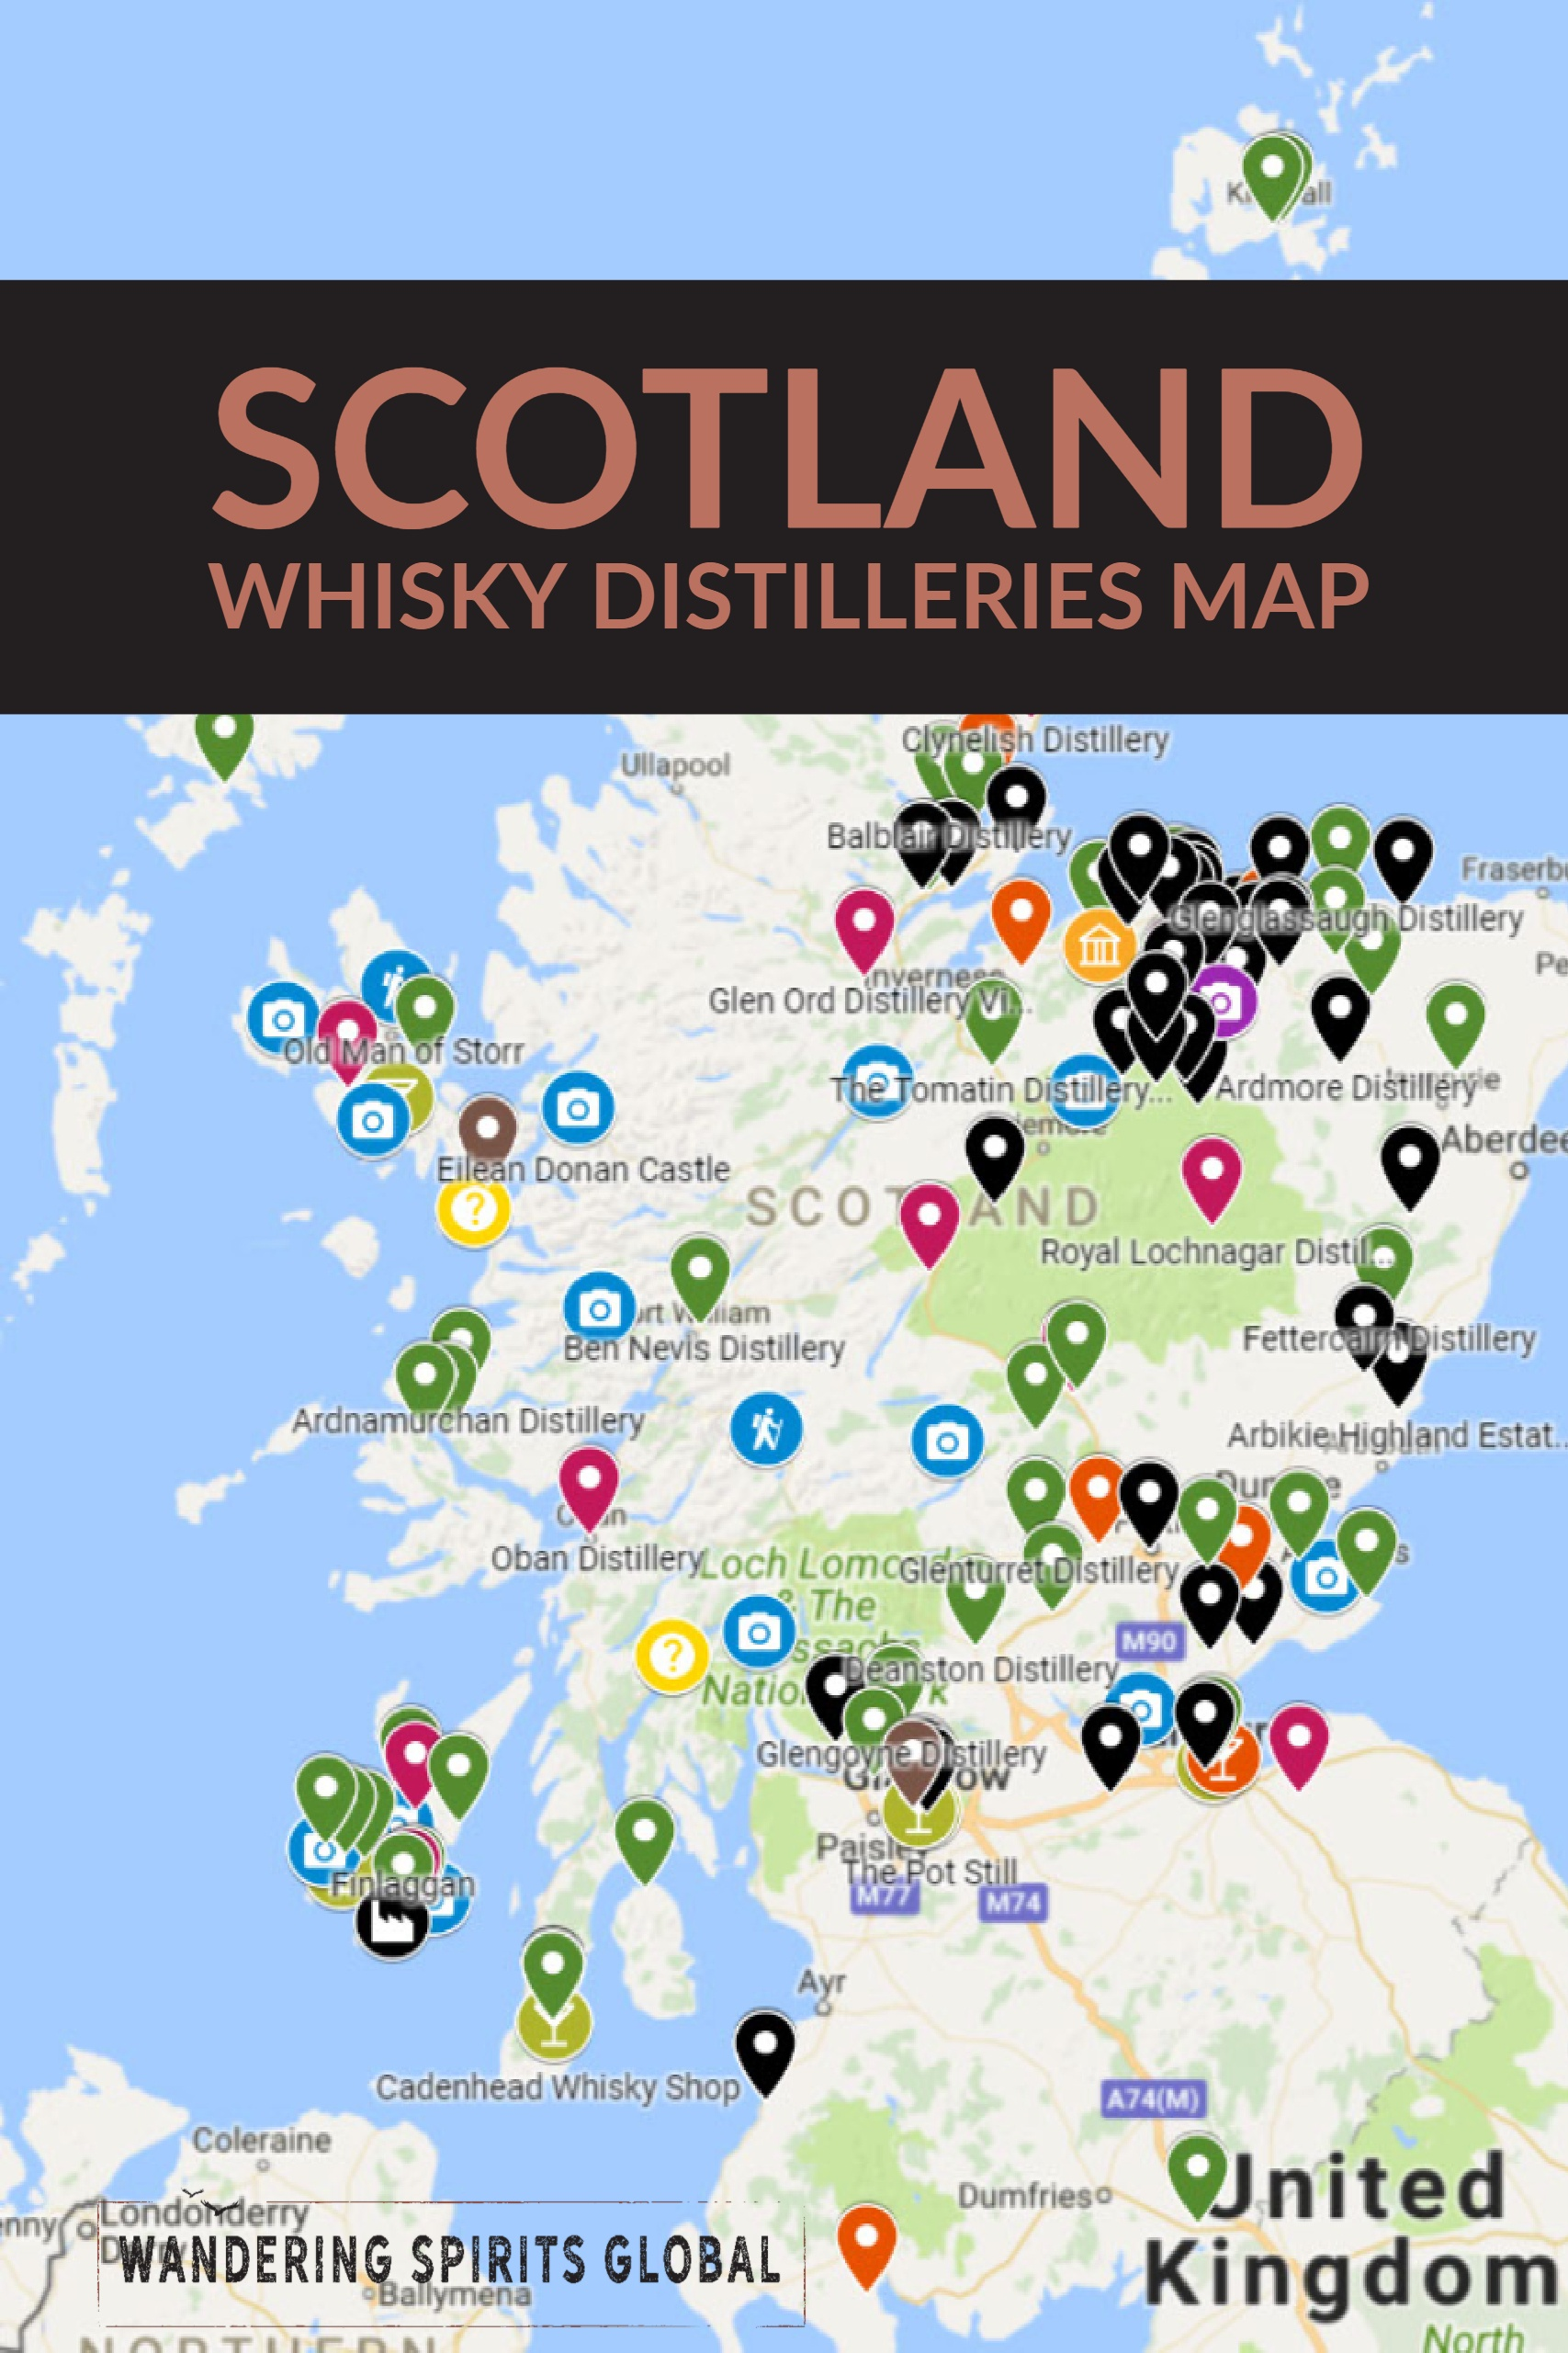 Whisky Karte Schottland.Scotland Whisky Distillery Map Wandering Spirits Global